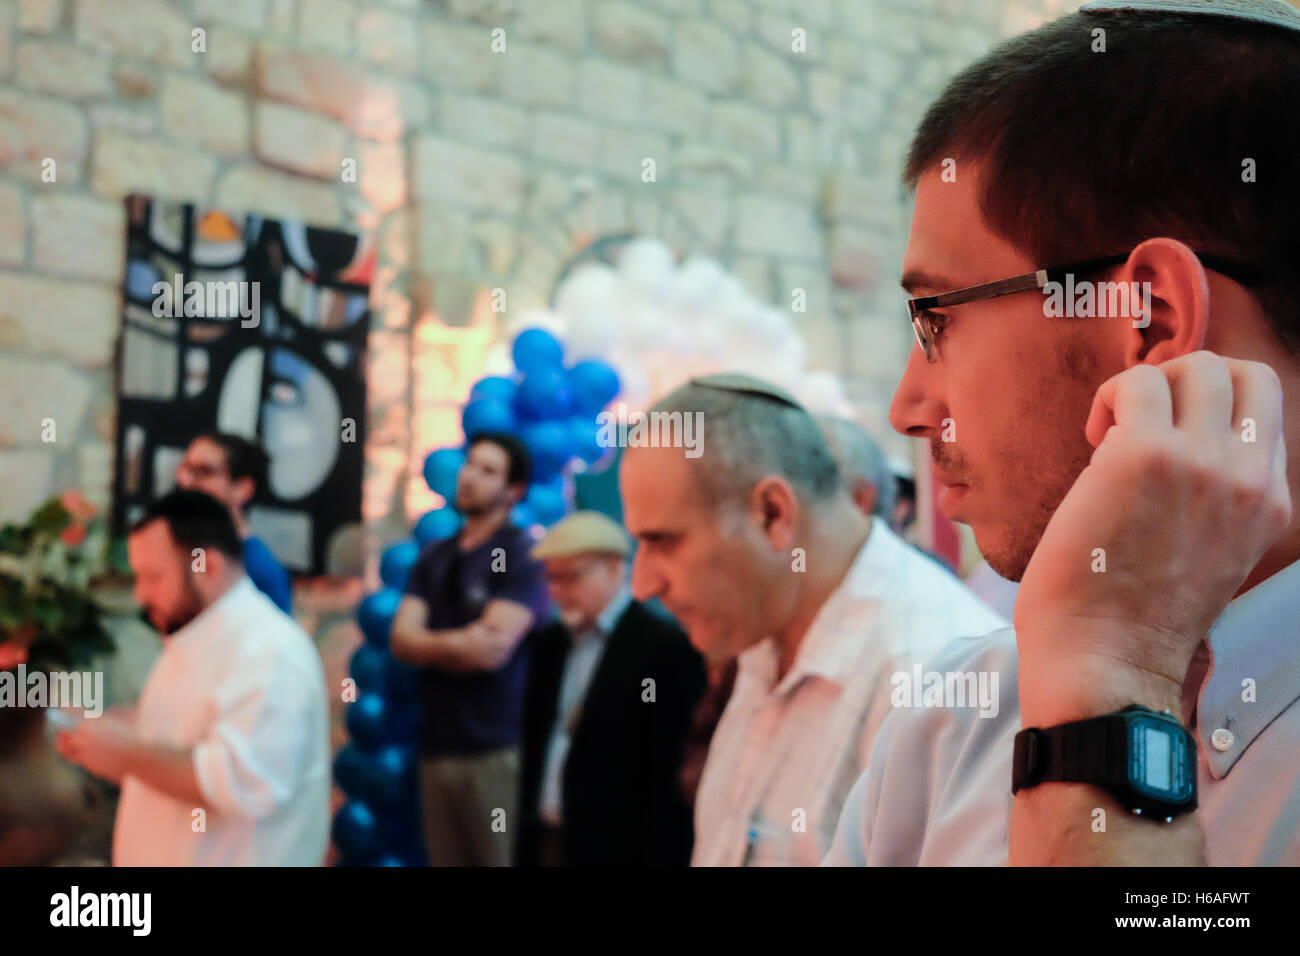 Jerusalem, Israel. 26th October, 2016. Jewish men congregate in a corner of a hall for evening prayers. Republicans - Stock Image